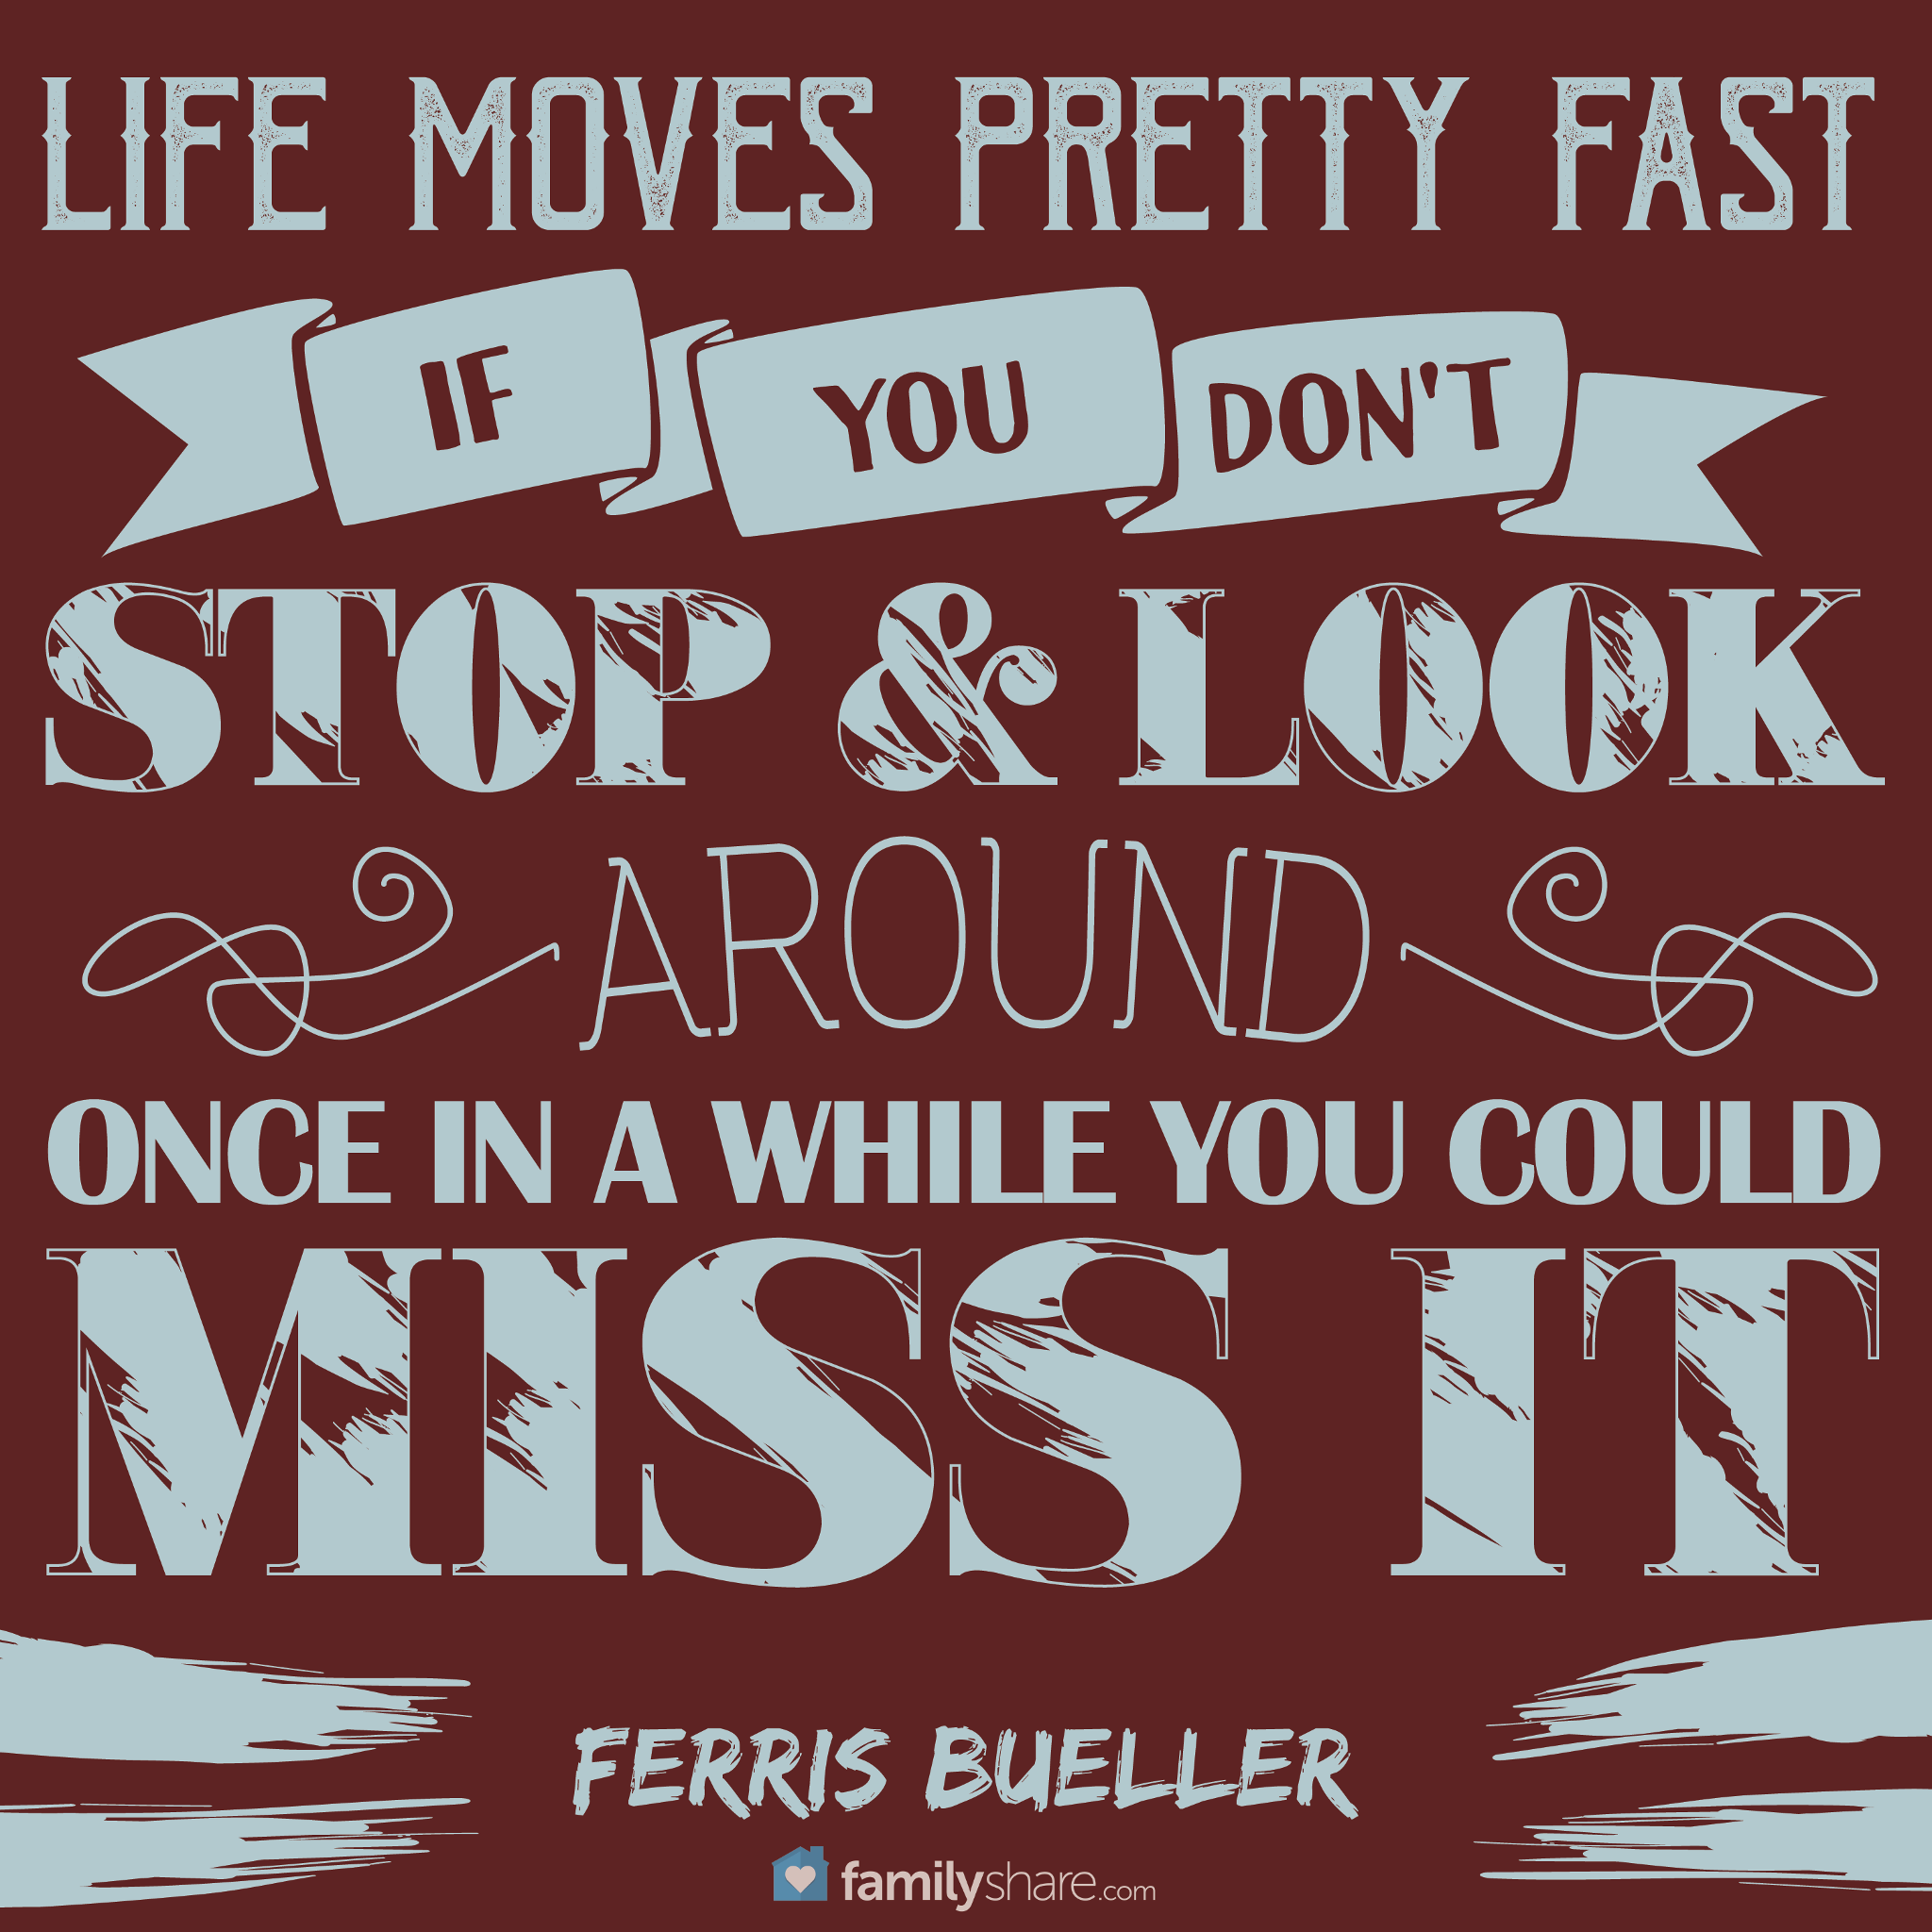 Ferris Bueller Life Moves Pretty Fast Quote Life Moves Pretty Fast If You Don't Stop And Look Around Once In A